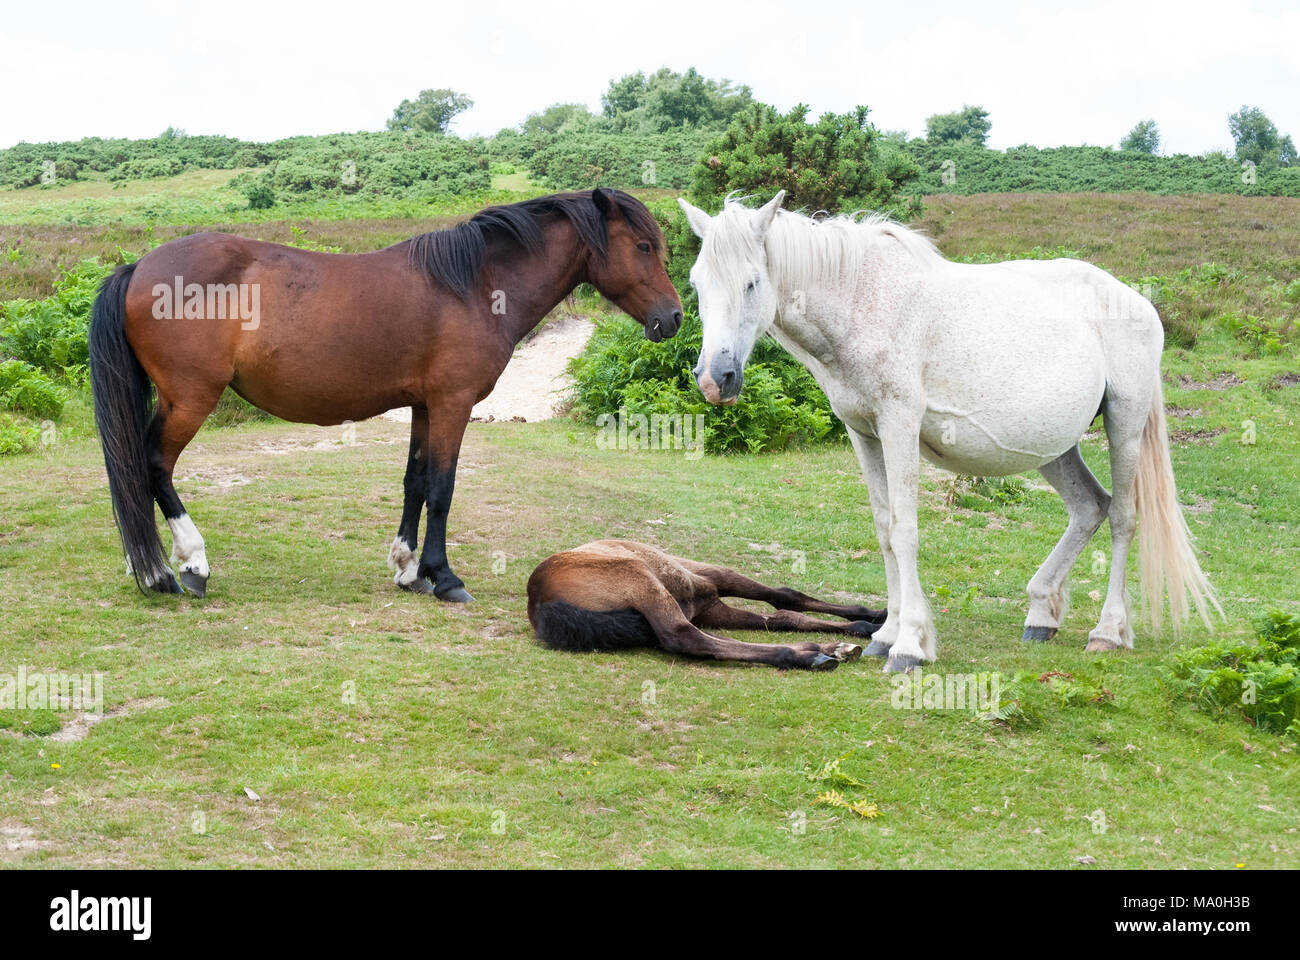 Two New Forest adult ponies, one brown, one white, stand over foal lying down on the grass in the New Forest national park, Hampshire, England, UK - Stock Image